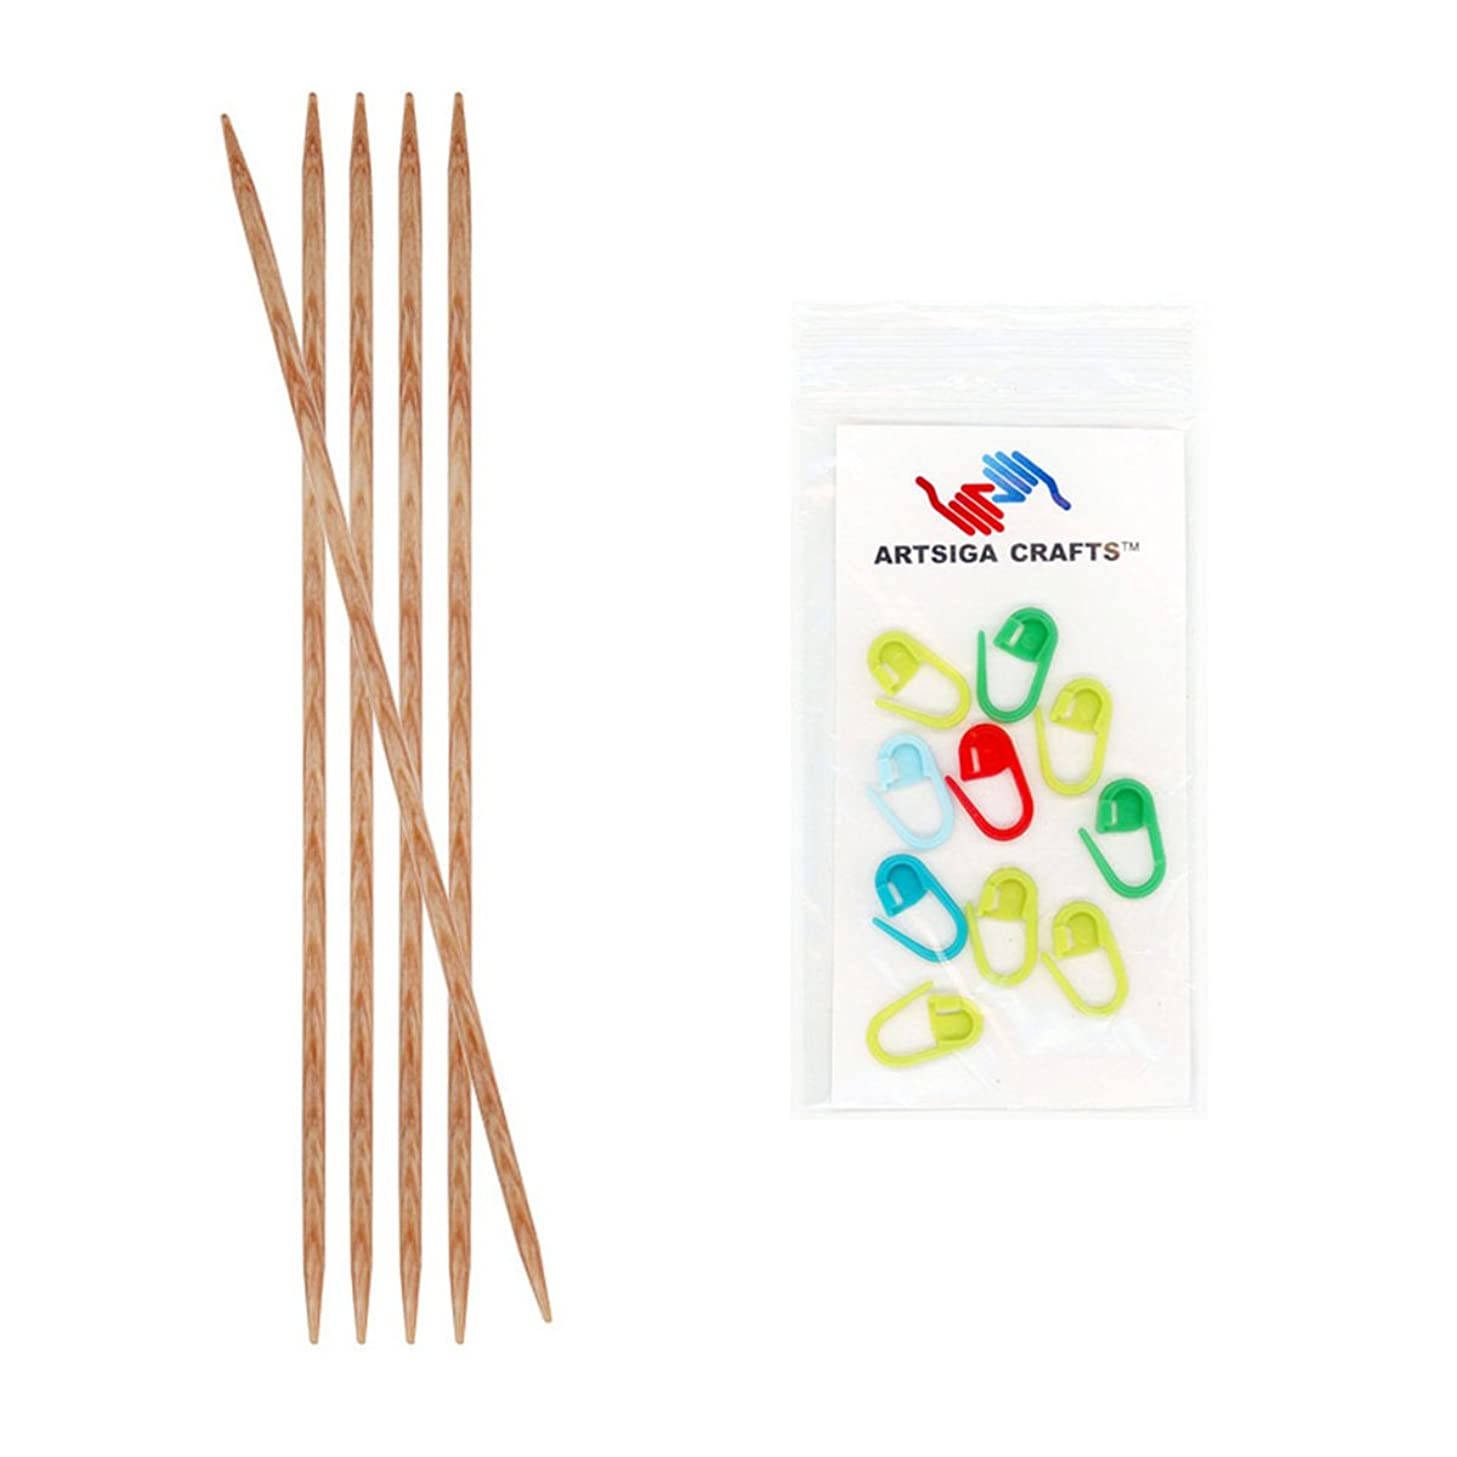 Knitter's Pride Naturalz Double Pointed 5-inch (12.5cm) Knitting Needles (Set of 5) Size 7 (4.5mm) Bundle with 10 Artsiga Crafts Stitch Markers 230010